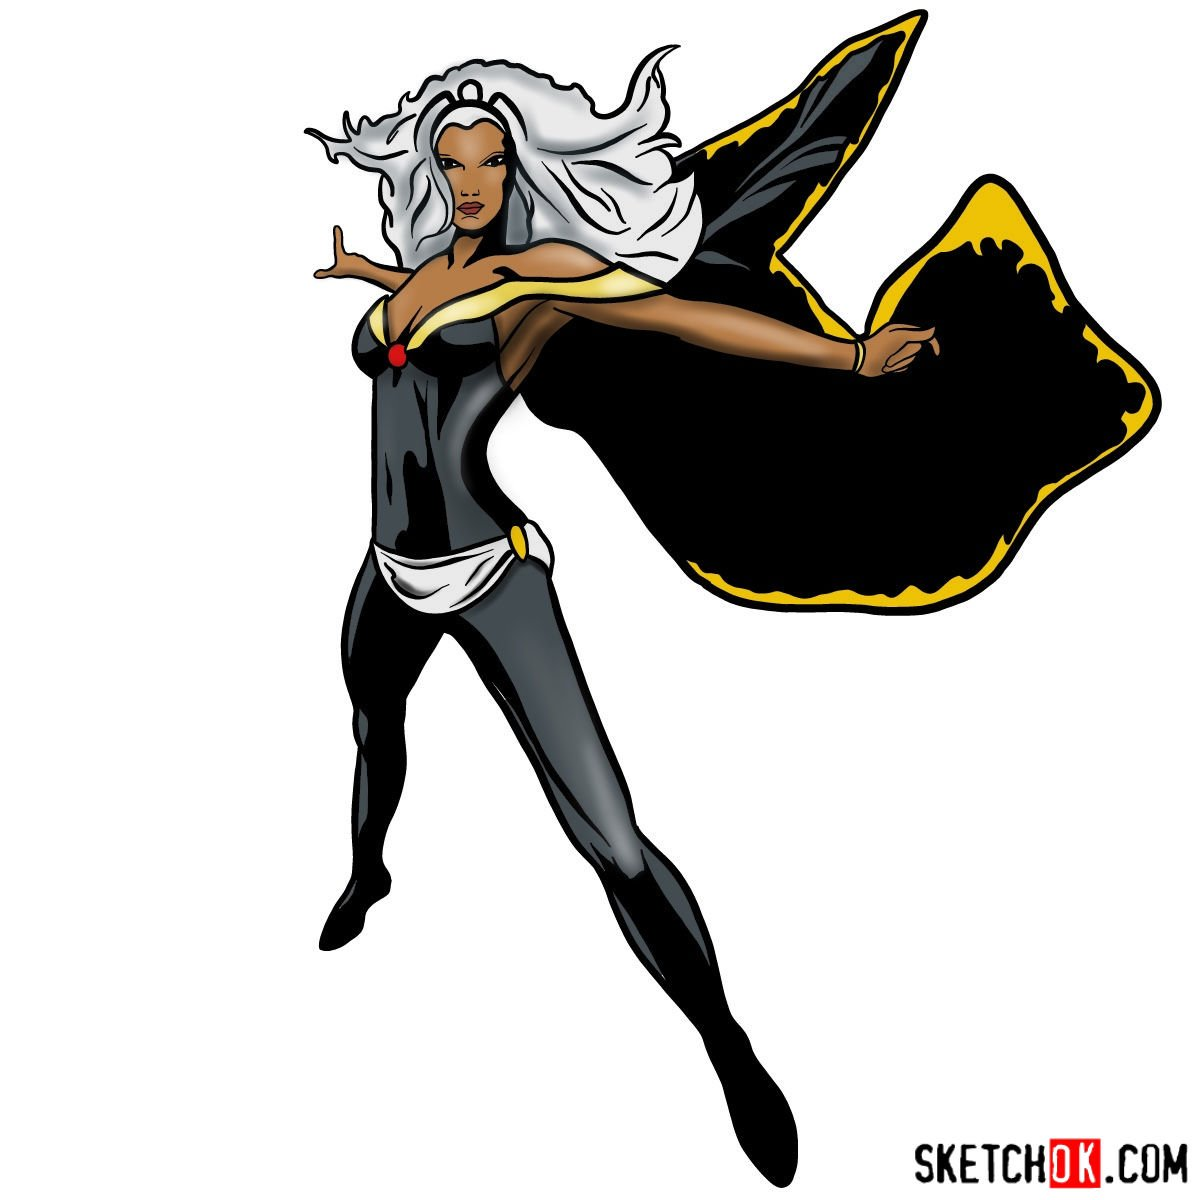 How to draw Storm from X-Men - coloring